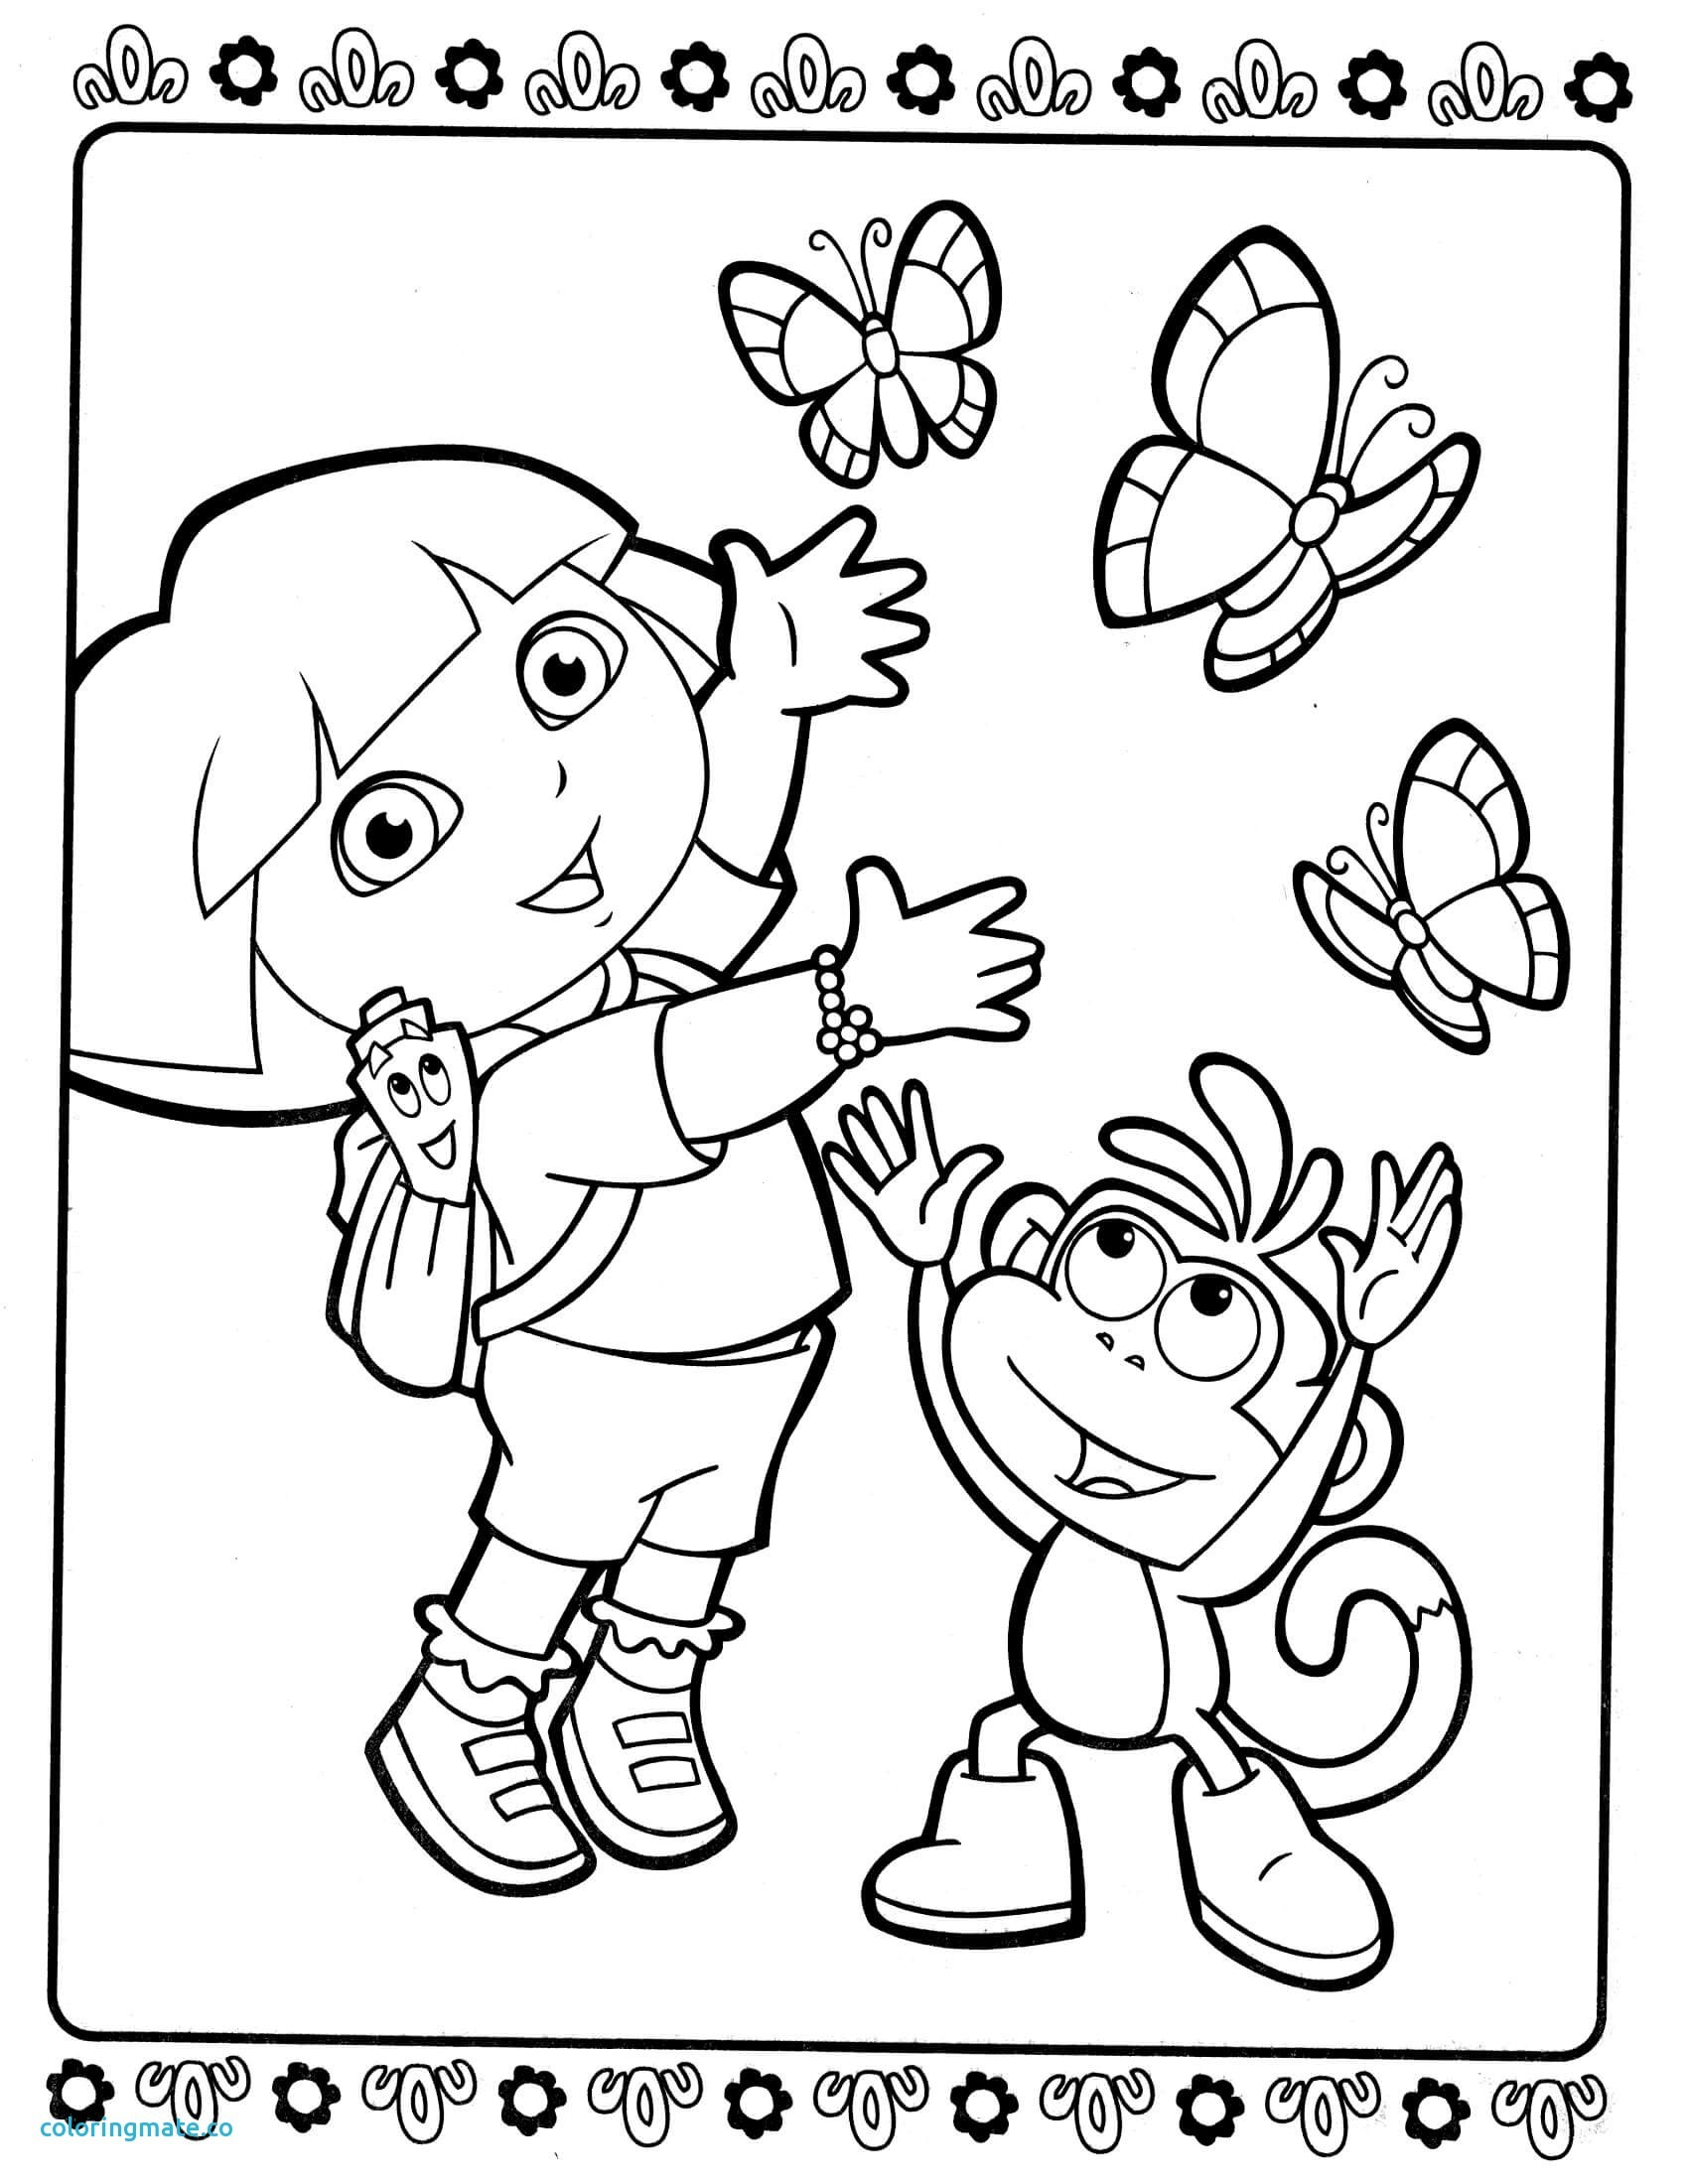 Dora And Friends Drawing At Getdrawings